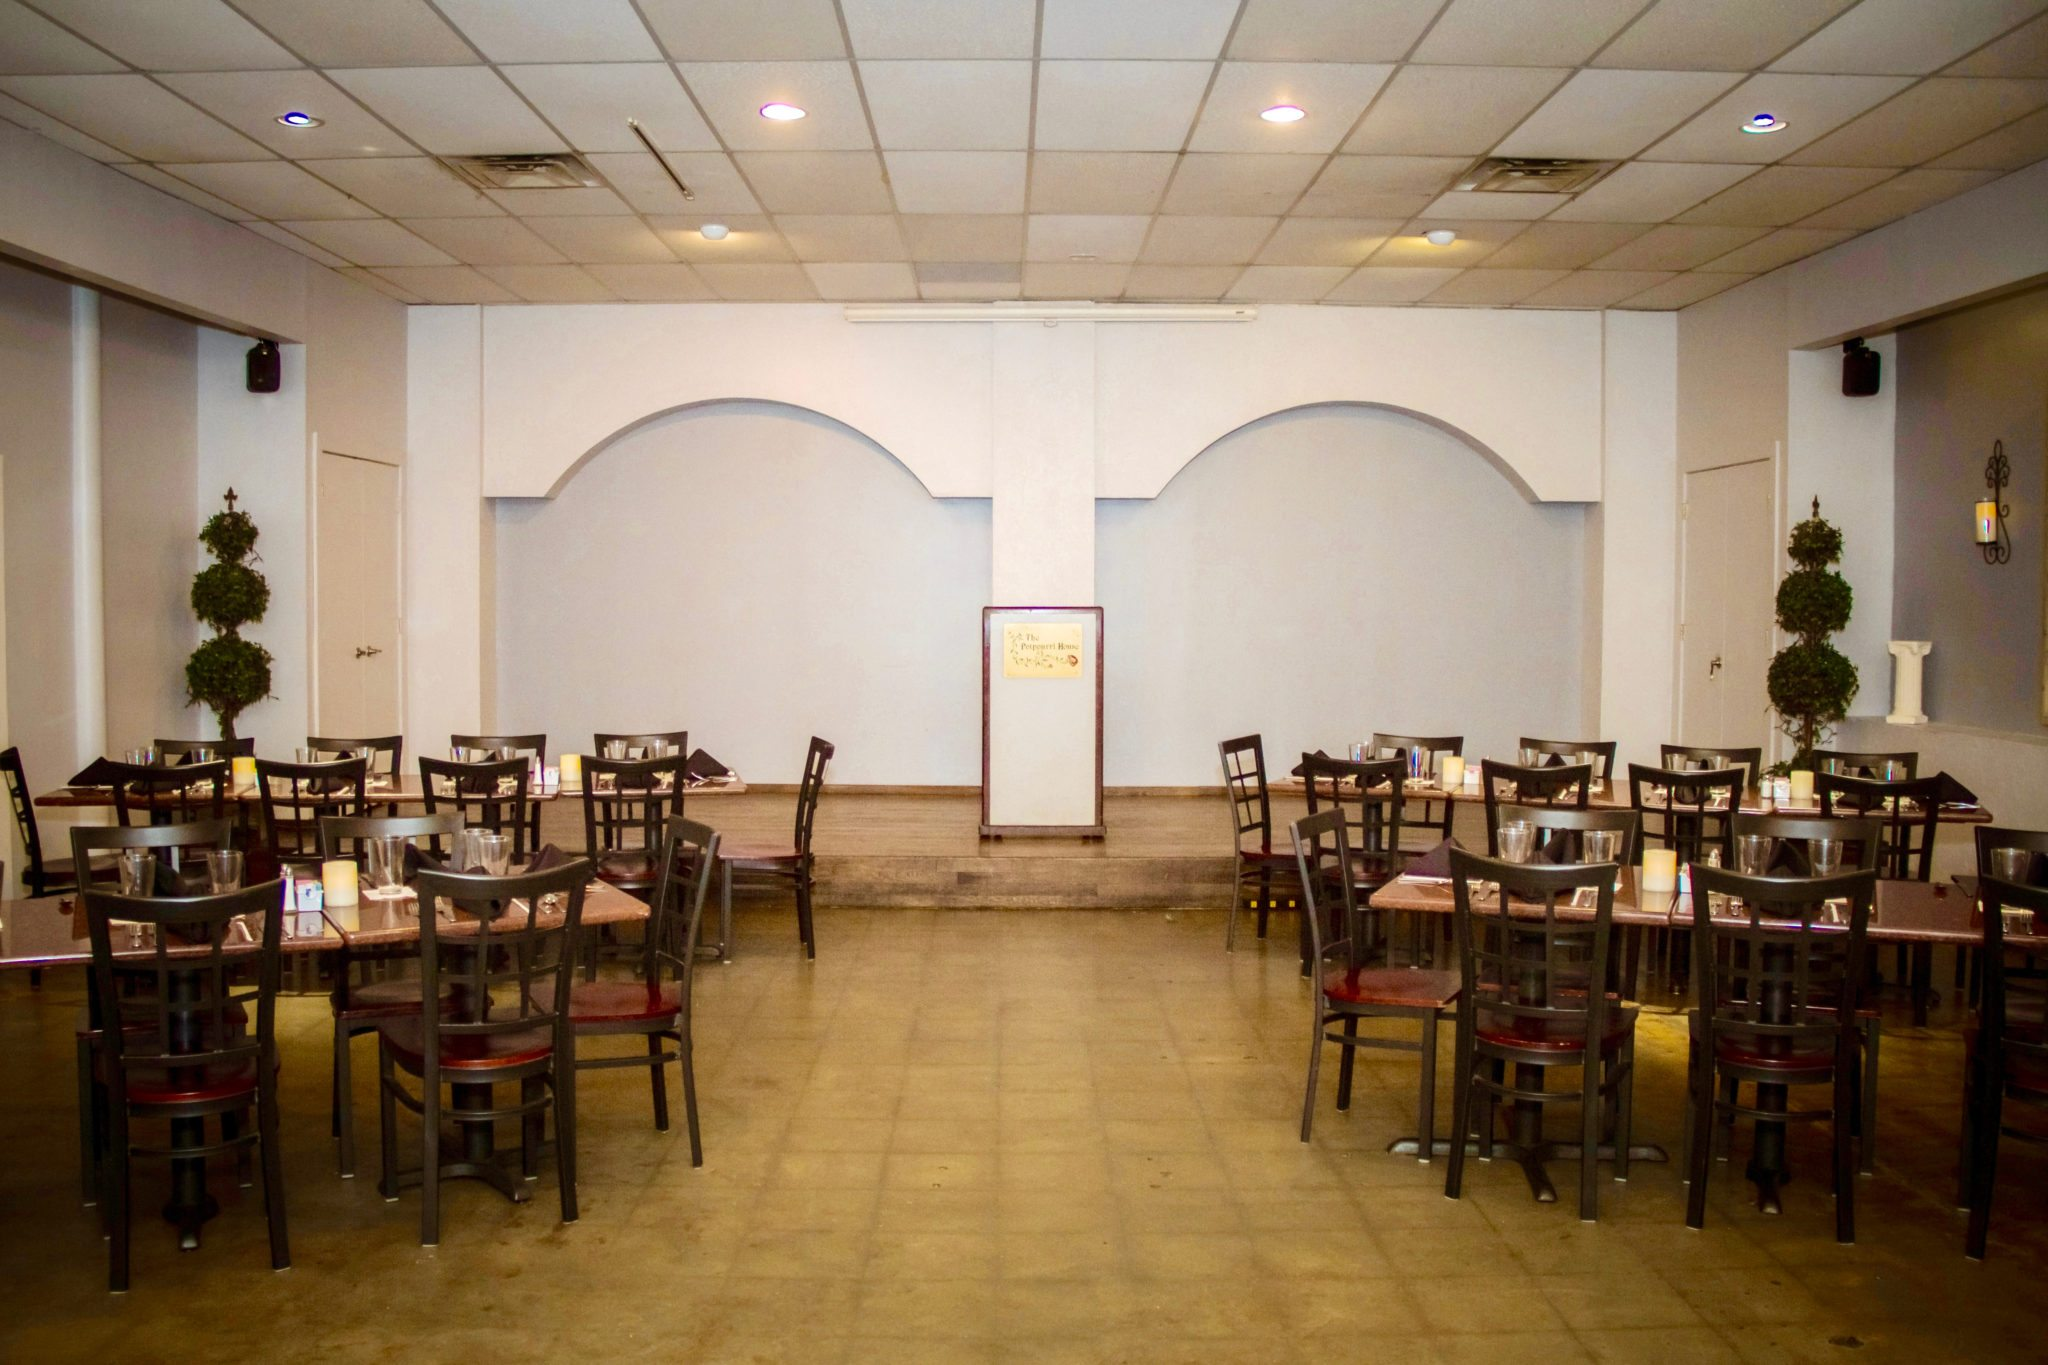 Request A Room: Wedding Venue Tyler Tx At Reisefeber.org